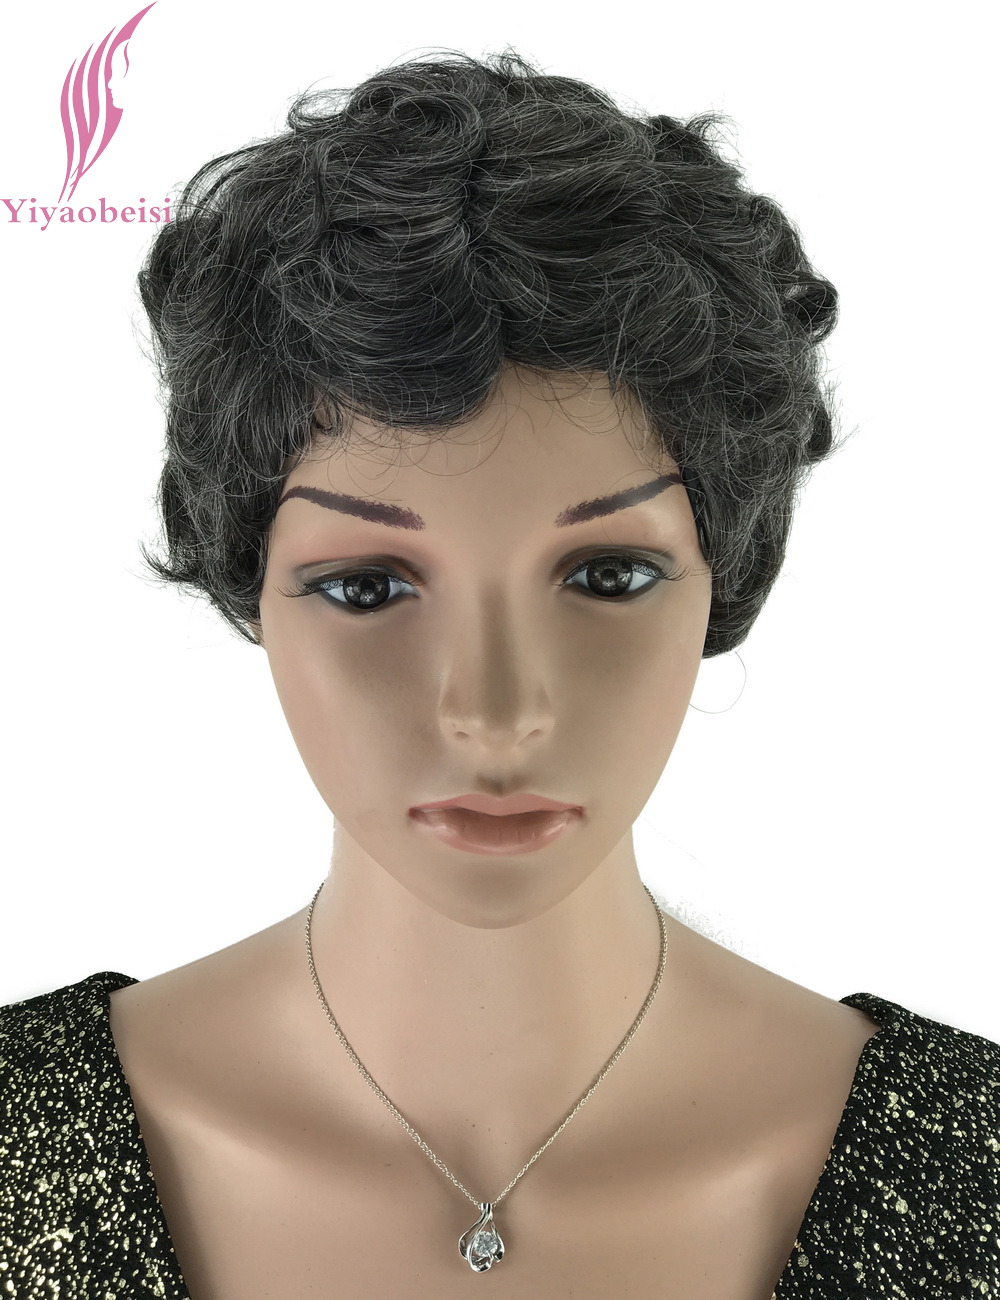 Yiyaobess 6inch Black White Highlights Short Curly Wigs For Older Women Synthetic African American Wig Hairstyle